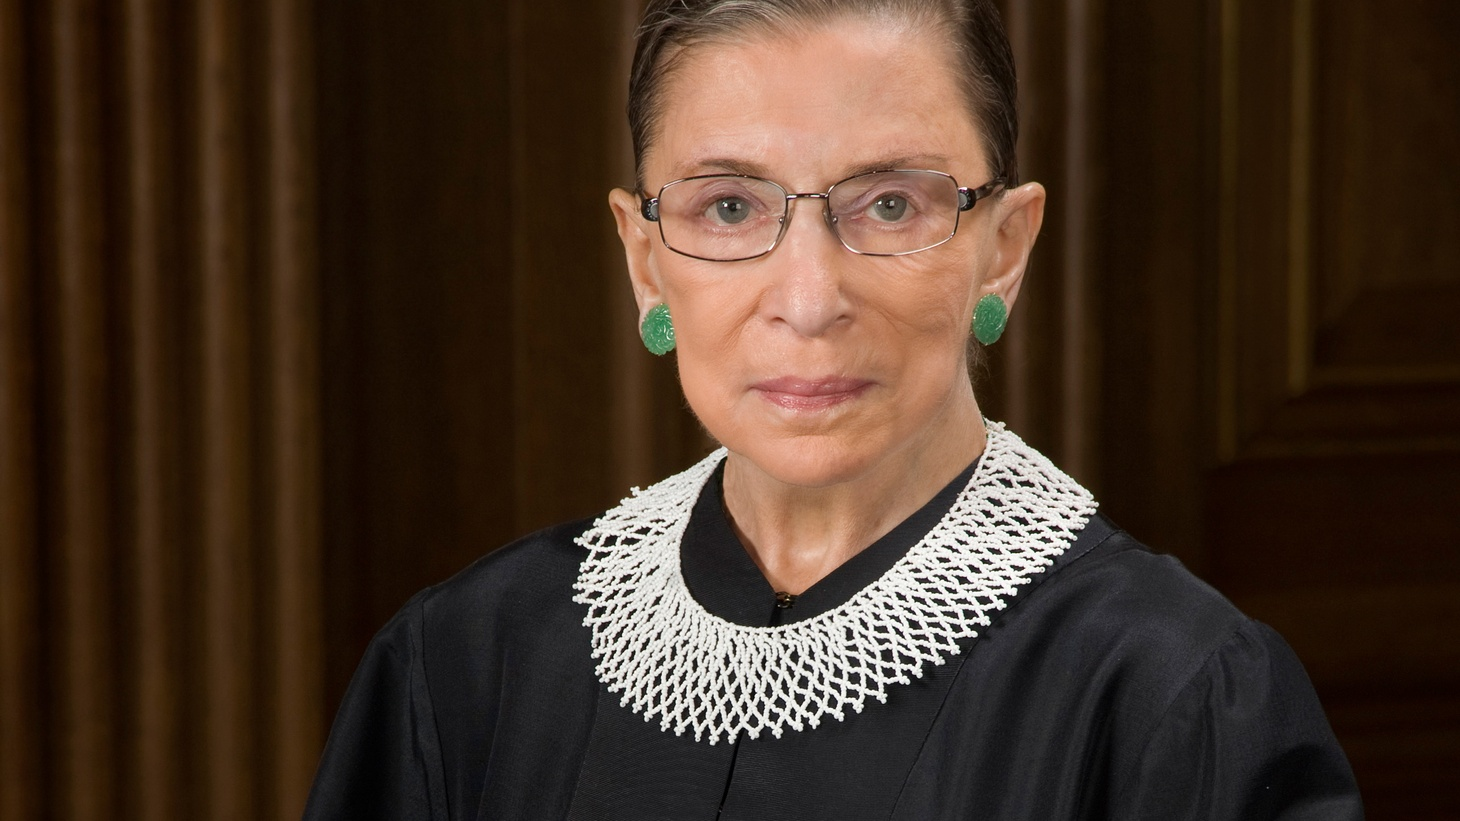 """Justice Ginsburg caught heat this week from both sides of the aisle for calling Donald Trump """"a faker"""" who has """"an ego."""" Americans expect members of the high court to avoid wading in political muck; but Ginsberg isn't called """"Notorious RBG"""" for nothing."""